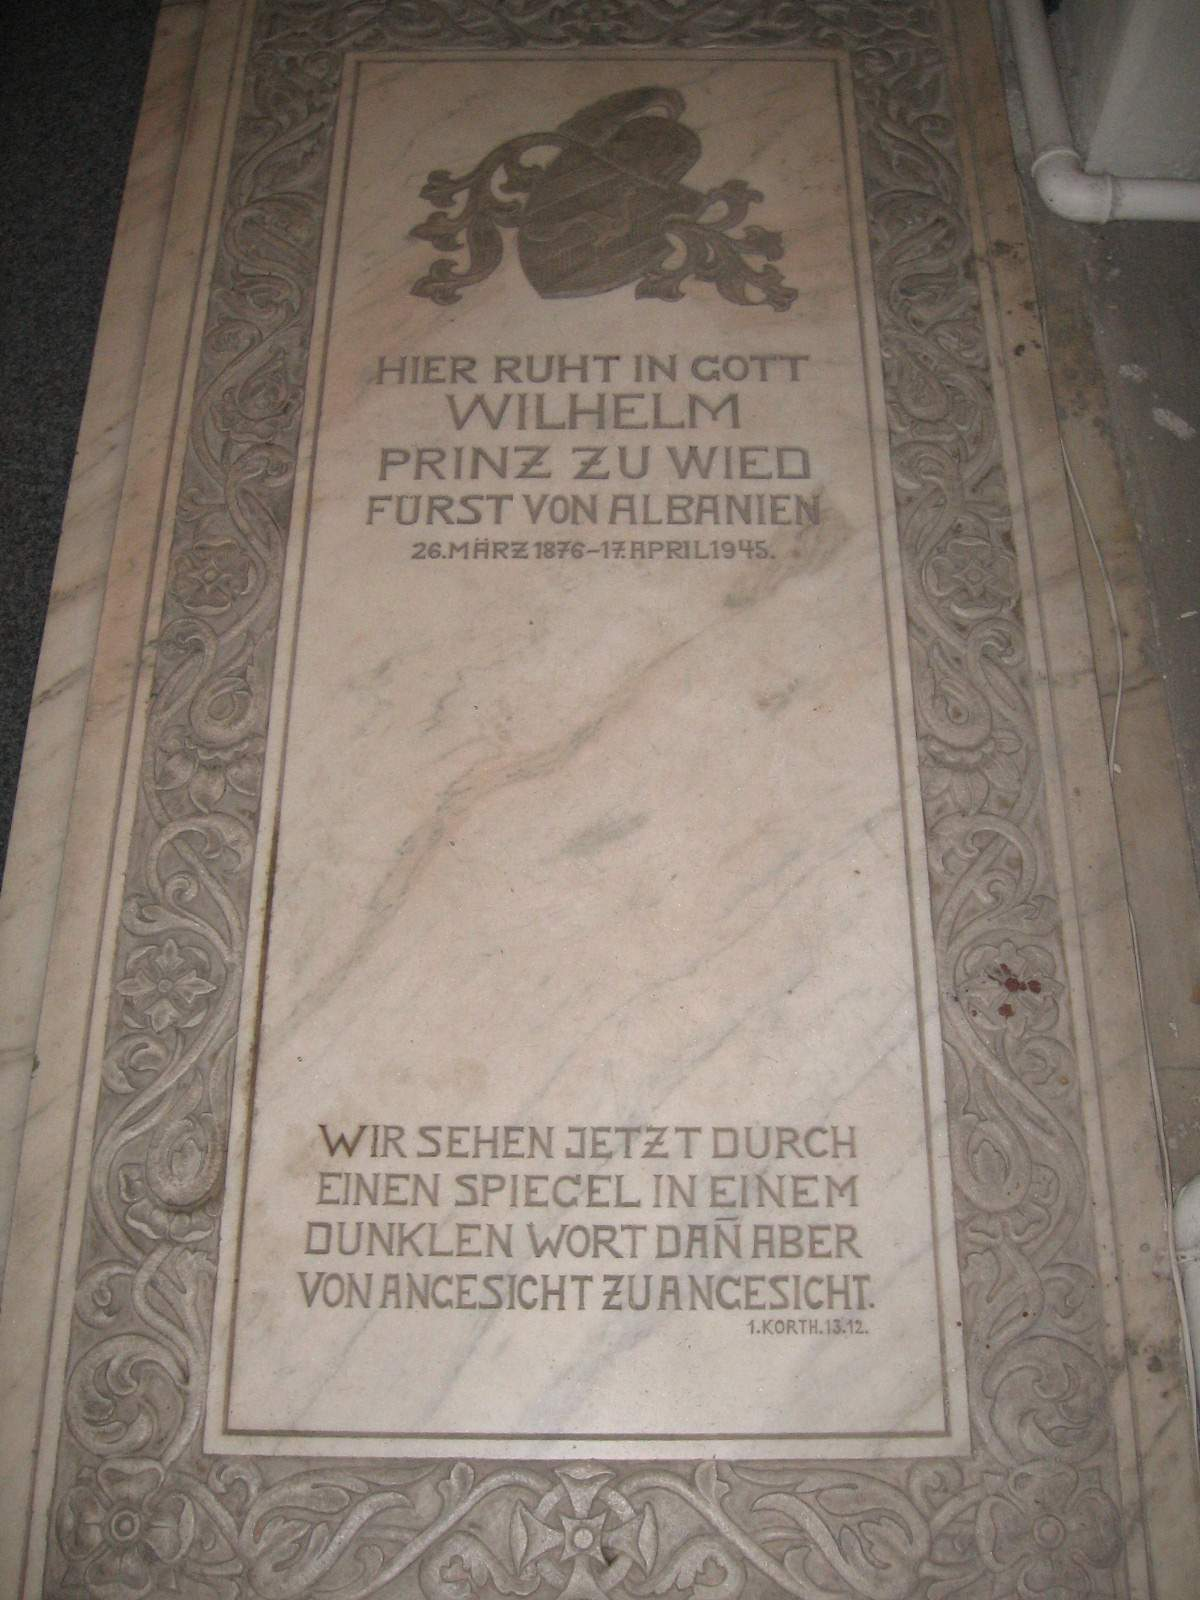 http://upload.wikimedia.org/wikipedia/commons/5/5d/Grabstein_von_Wilhelm_zu_Wied.JPG